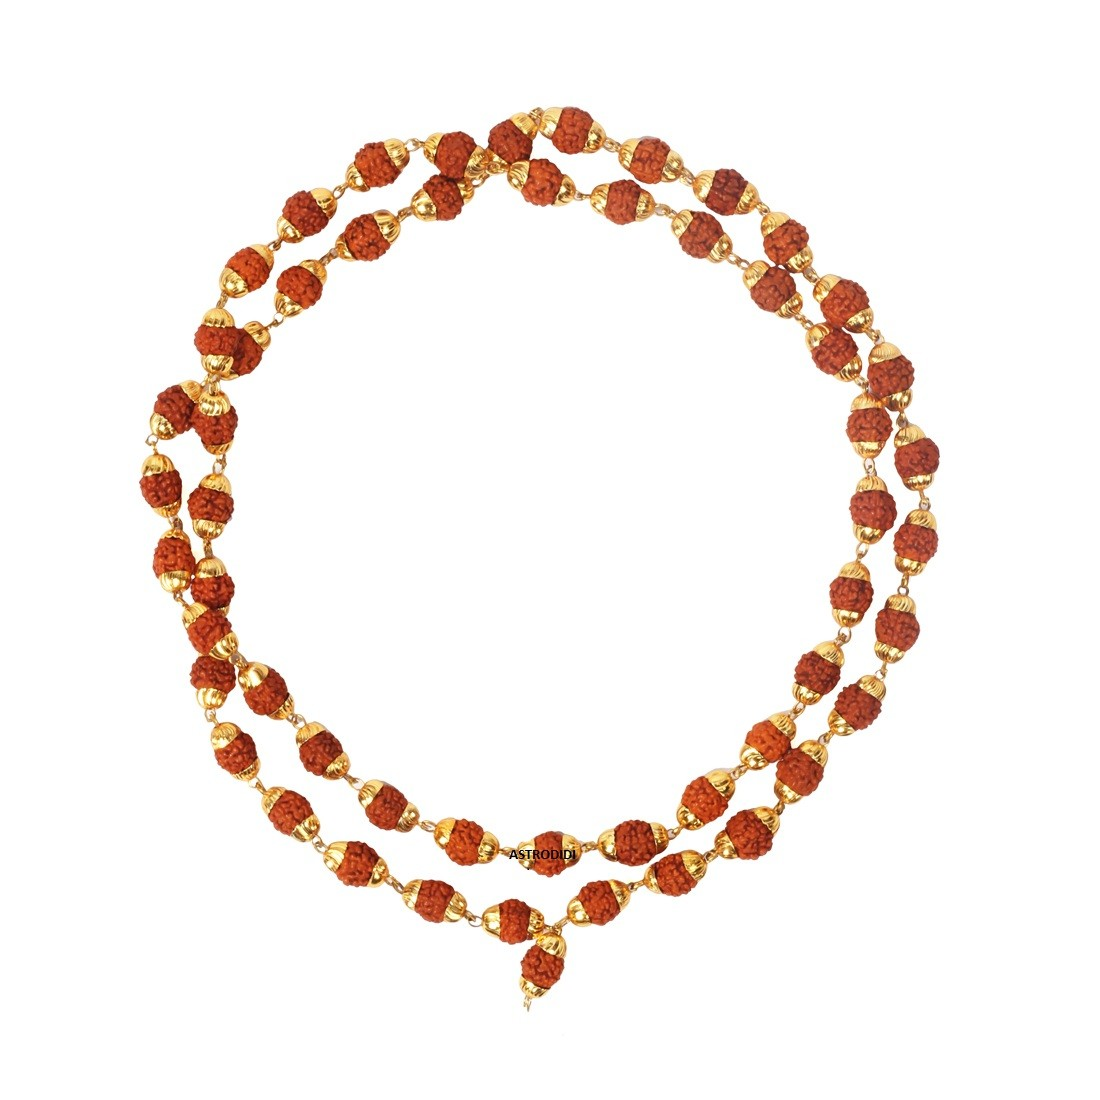 Astrodidi Rudraksha Mala (Panch Mukhi) in Copper Cap